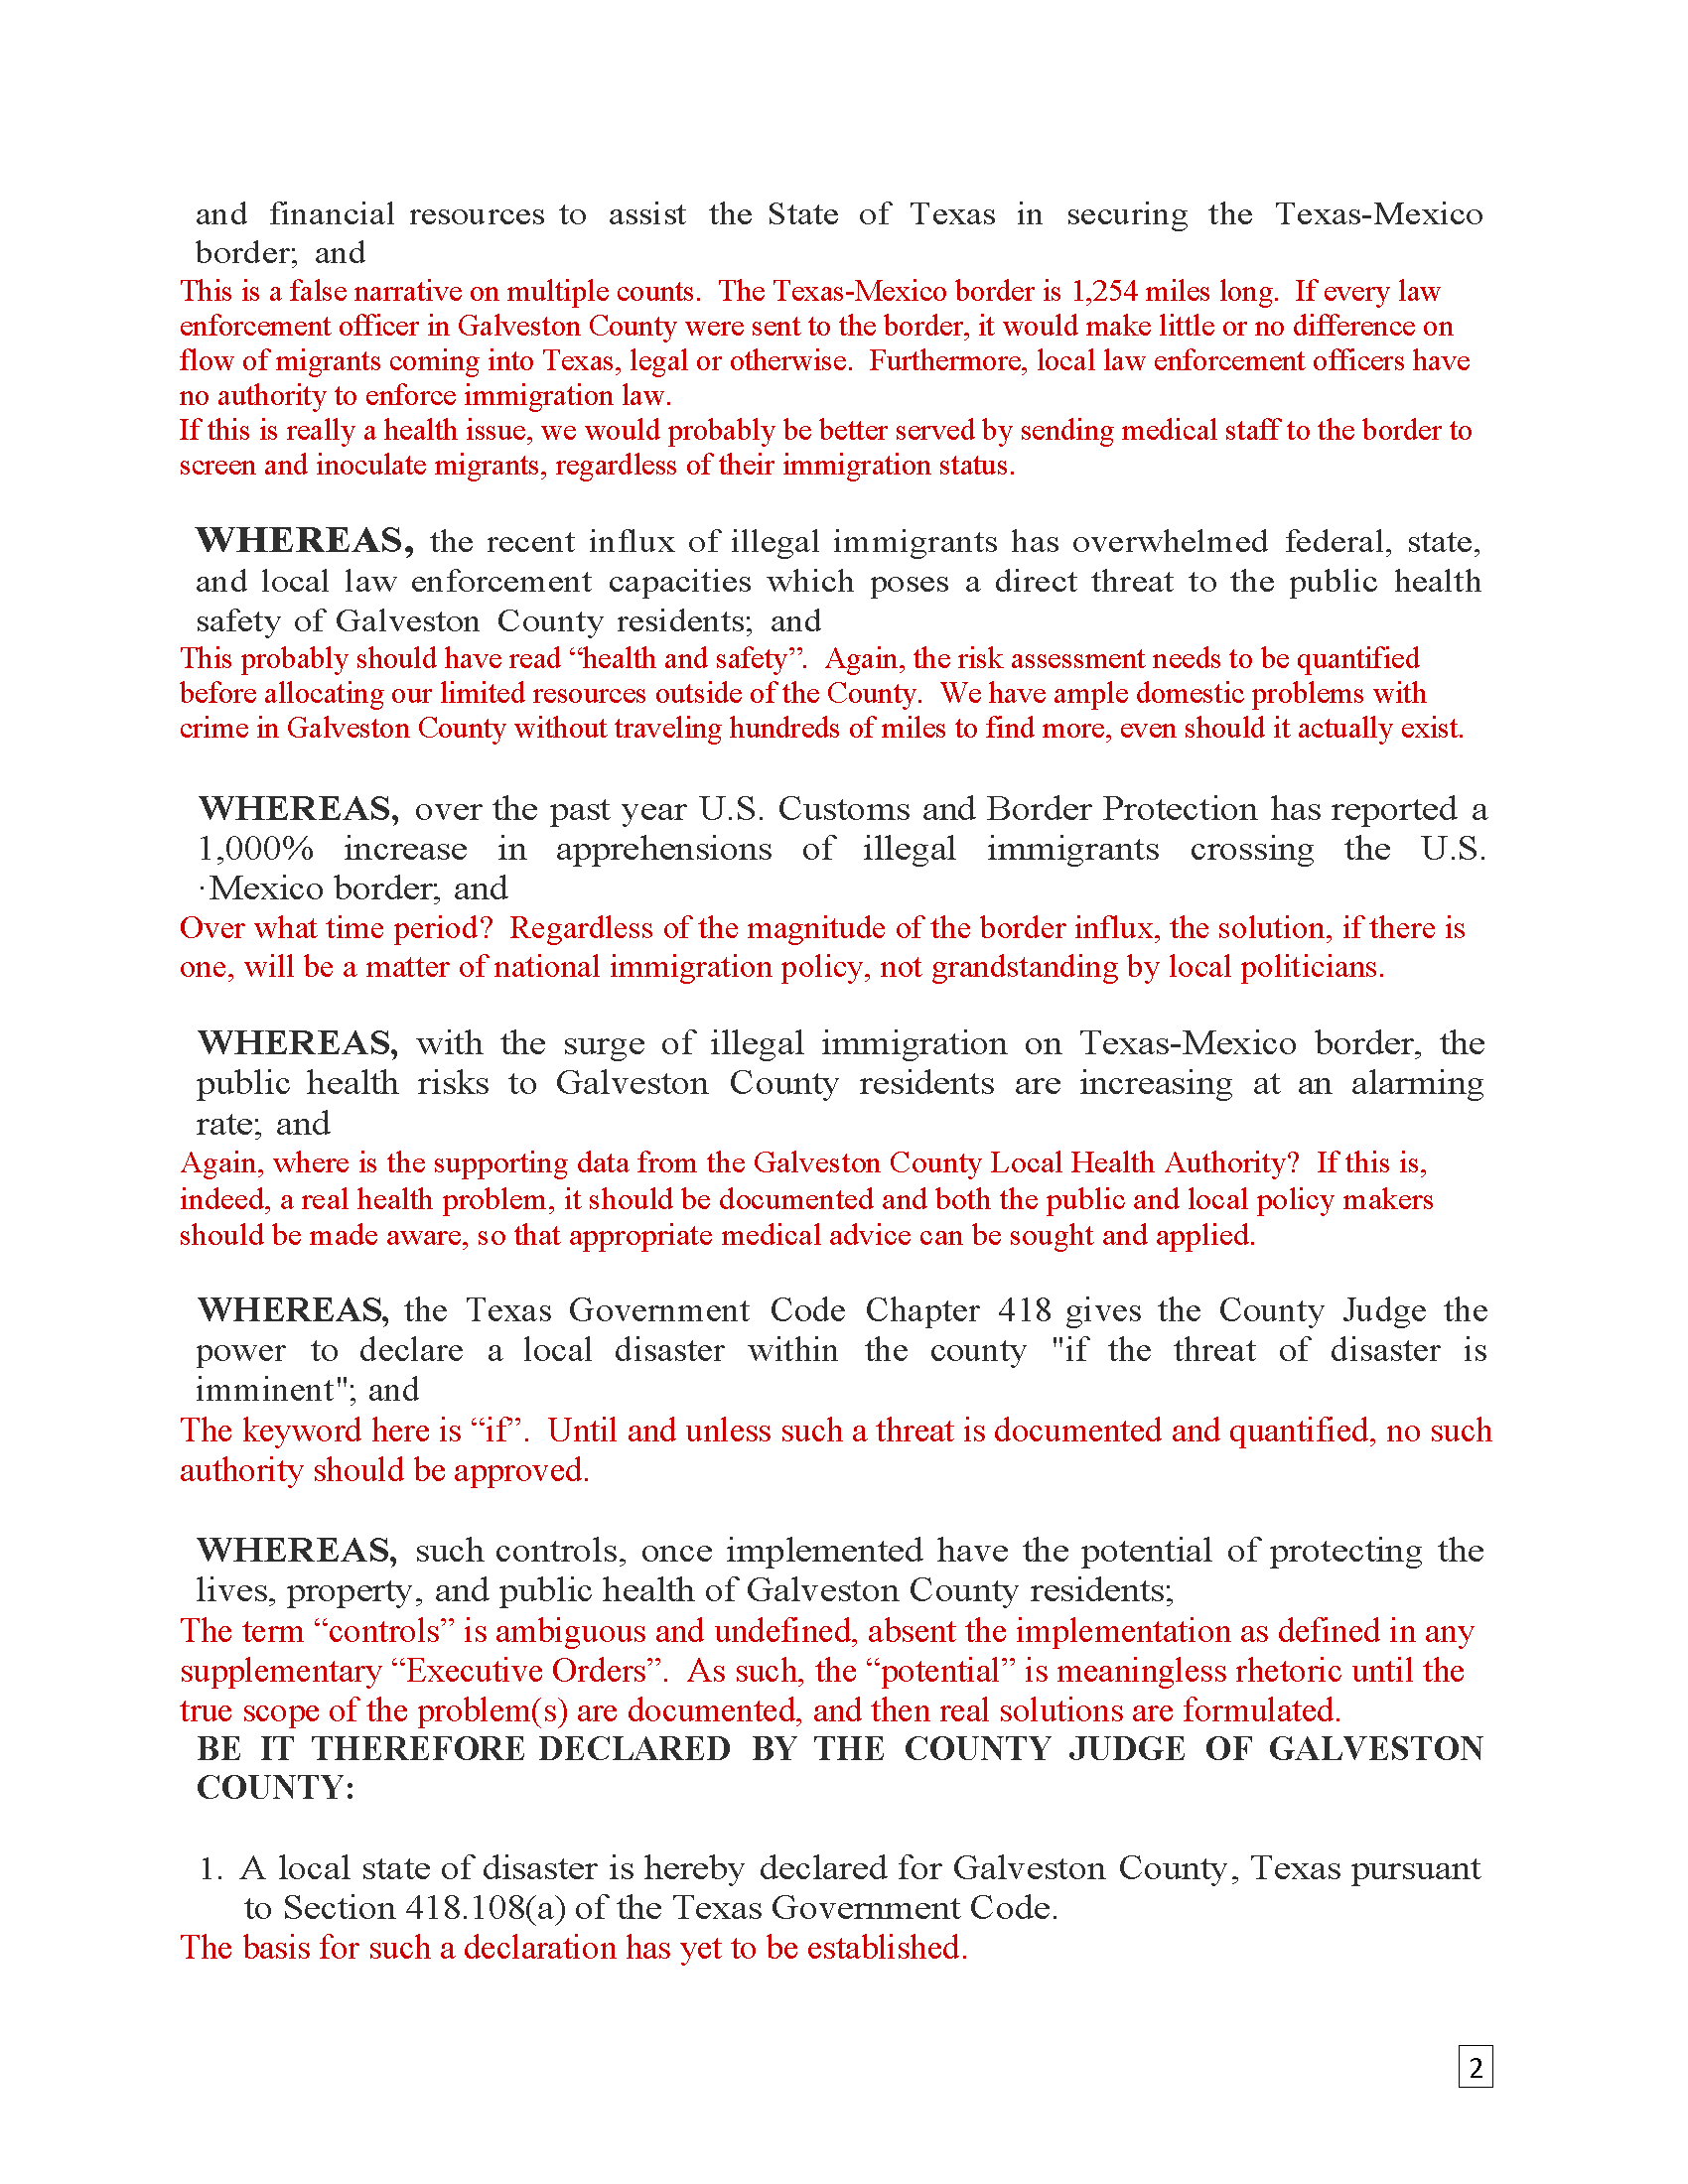 2021_06_29_Declaration_of_Local_State_of_Disaster_annotated_Page_2.png